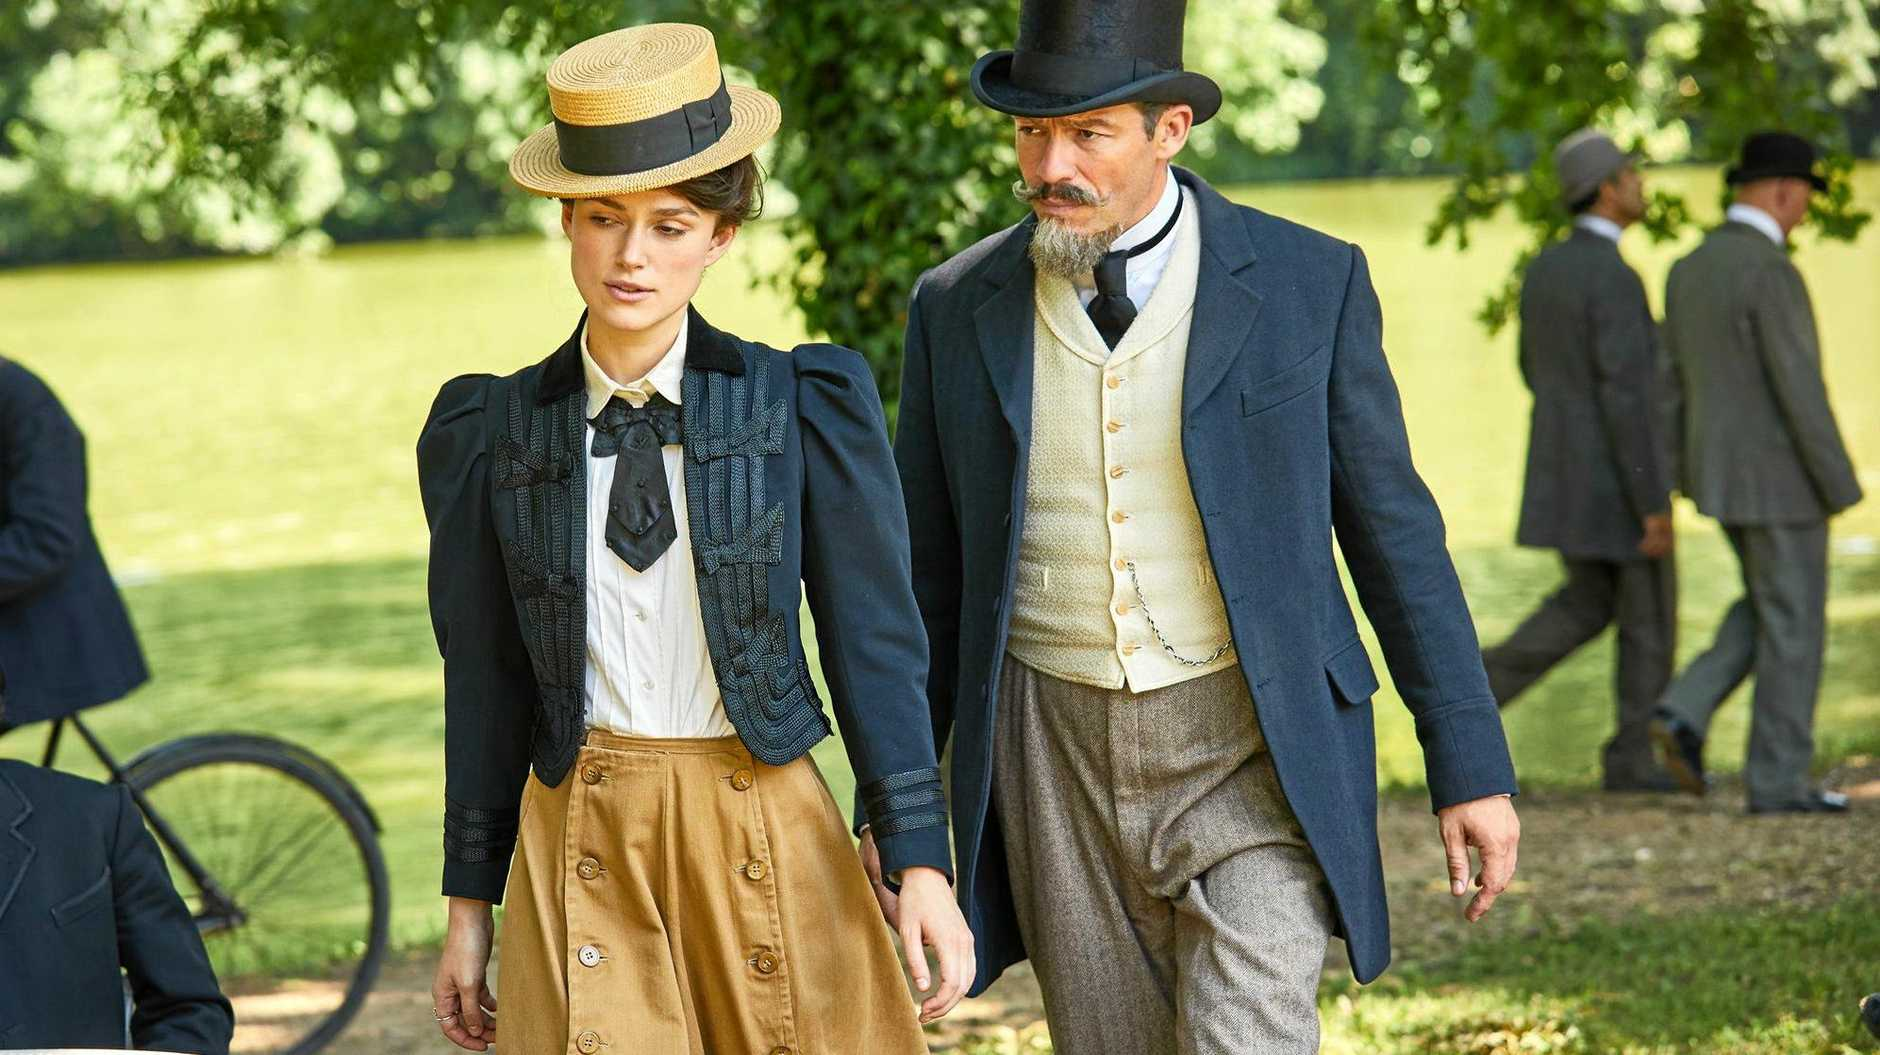 Keira Knightley and Dominic West in a scene from the movie Colette.